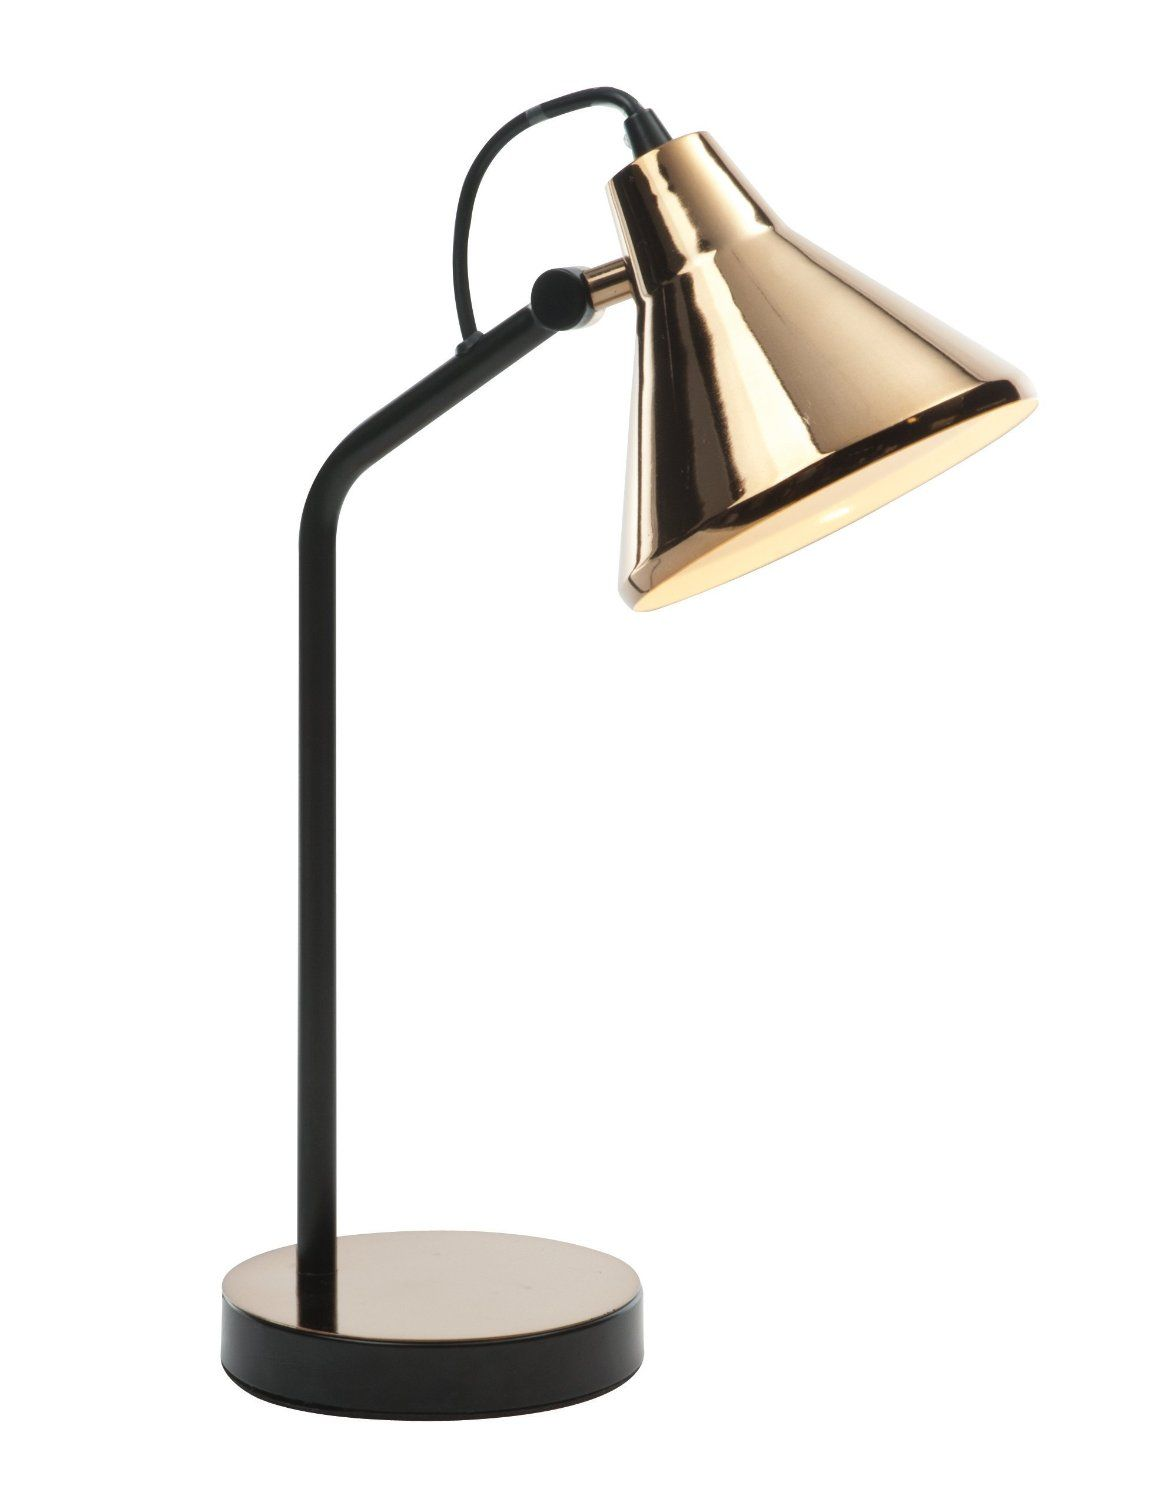 Copper wire lamp google zoeken projecten om te proberen stylish warm copper matt black paint table lamp light with adjustable neck keyboard keysfo Image collections